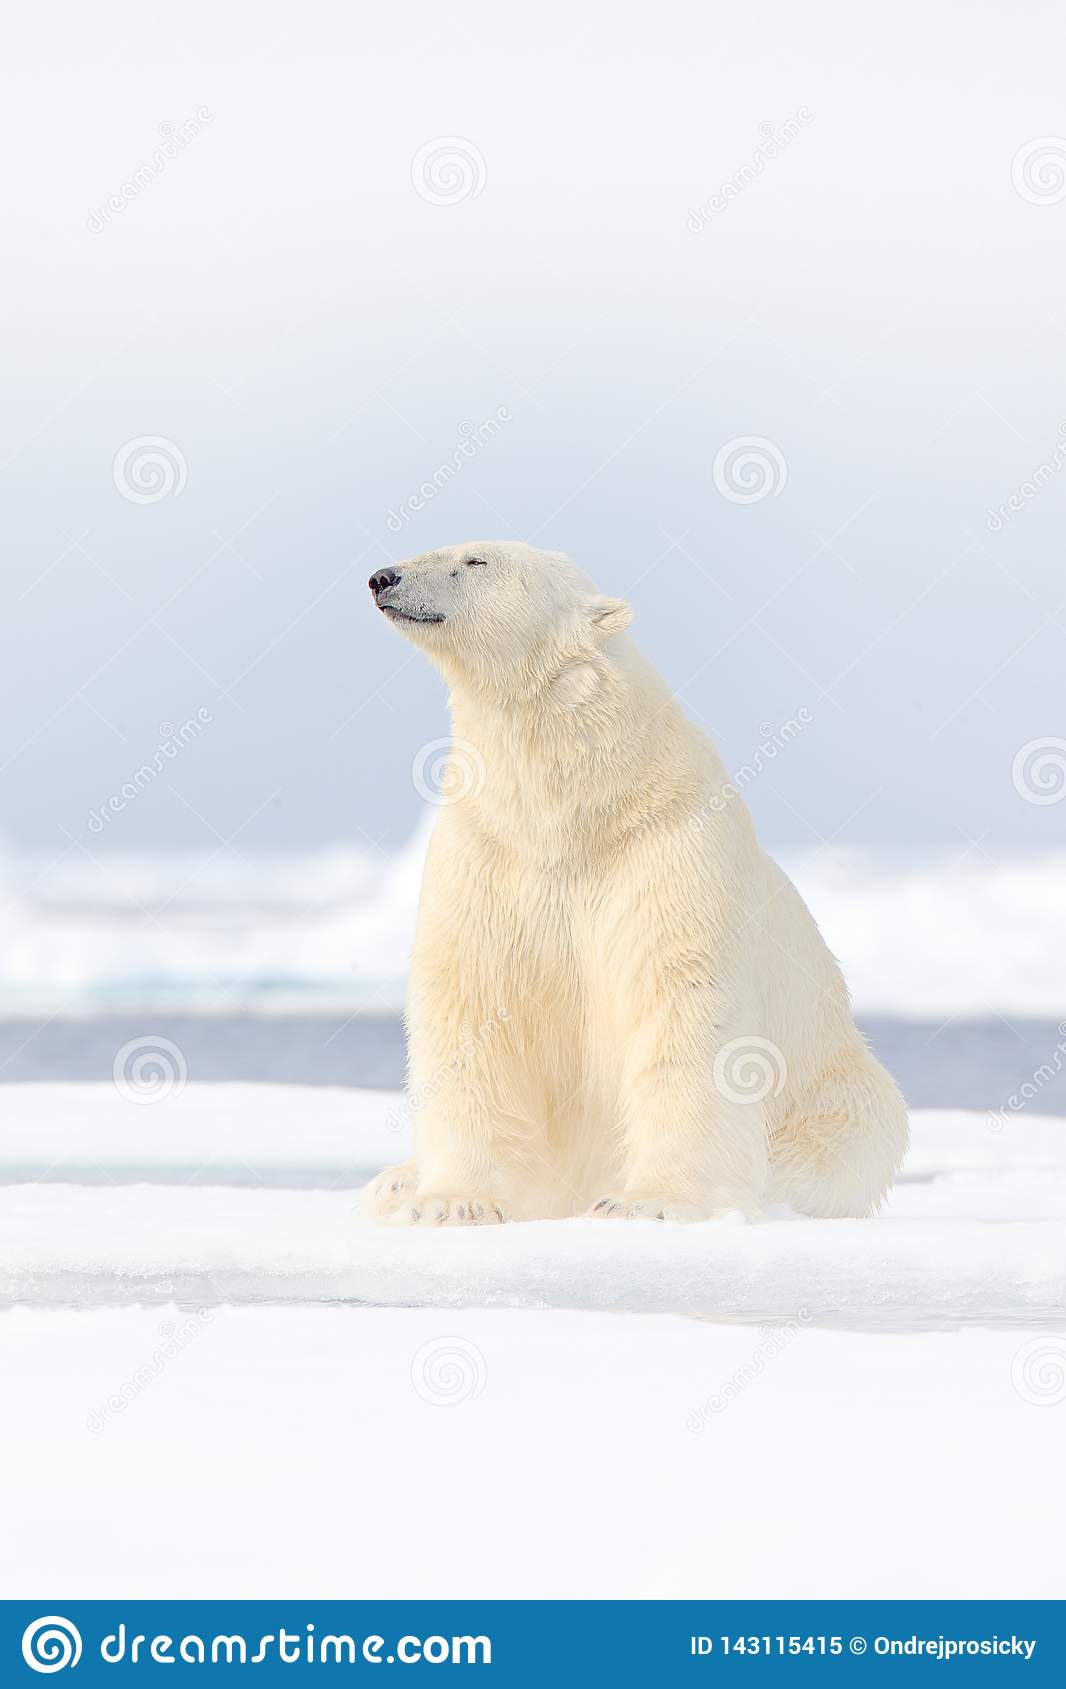 Polar bear on drift ice edge with snow and water in Norway sea. White animal in the nature habitat, Europe. Wildlife scene from